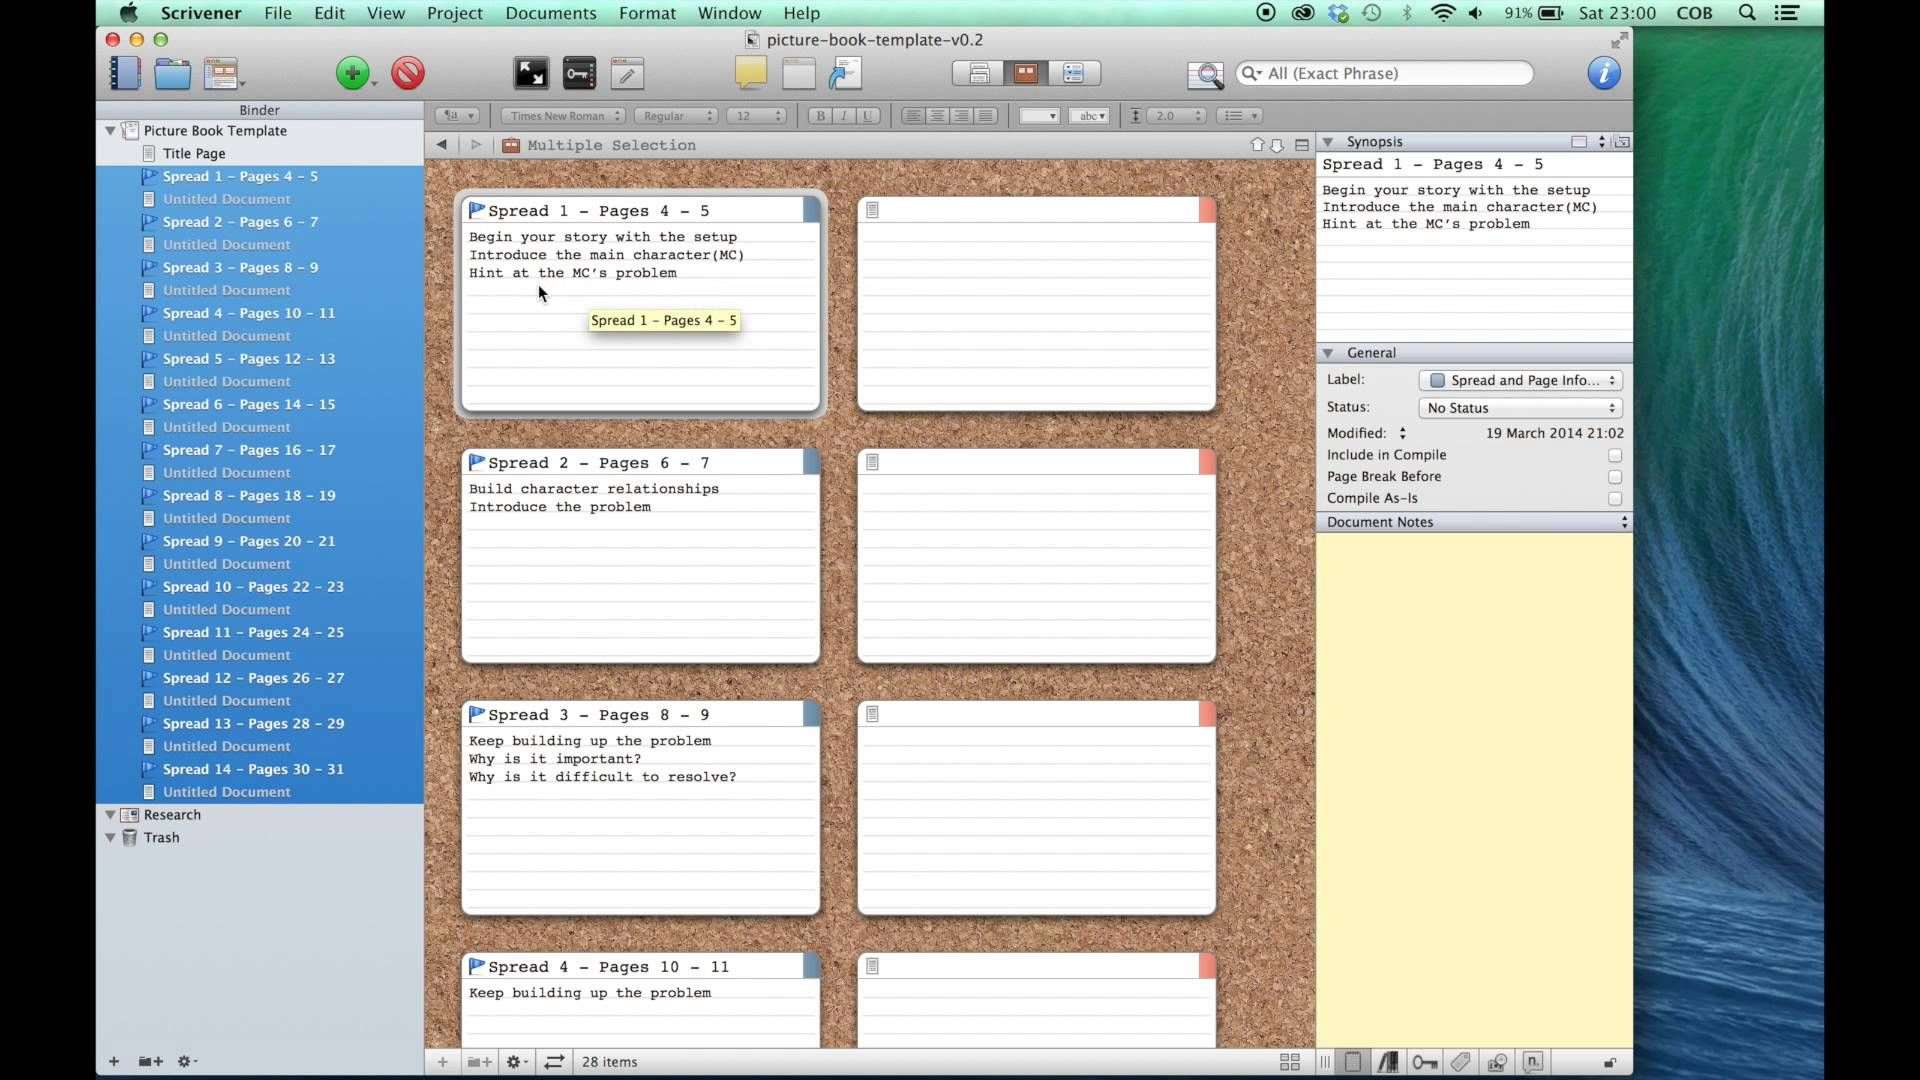 Scrivener picture book template tutorial by claire obrien scrivener picture book template tutorial by claire obrien pronofoot35fo Images